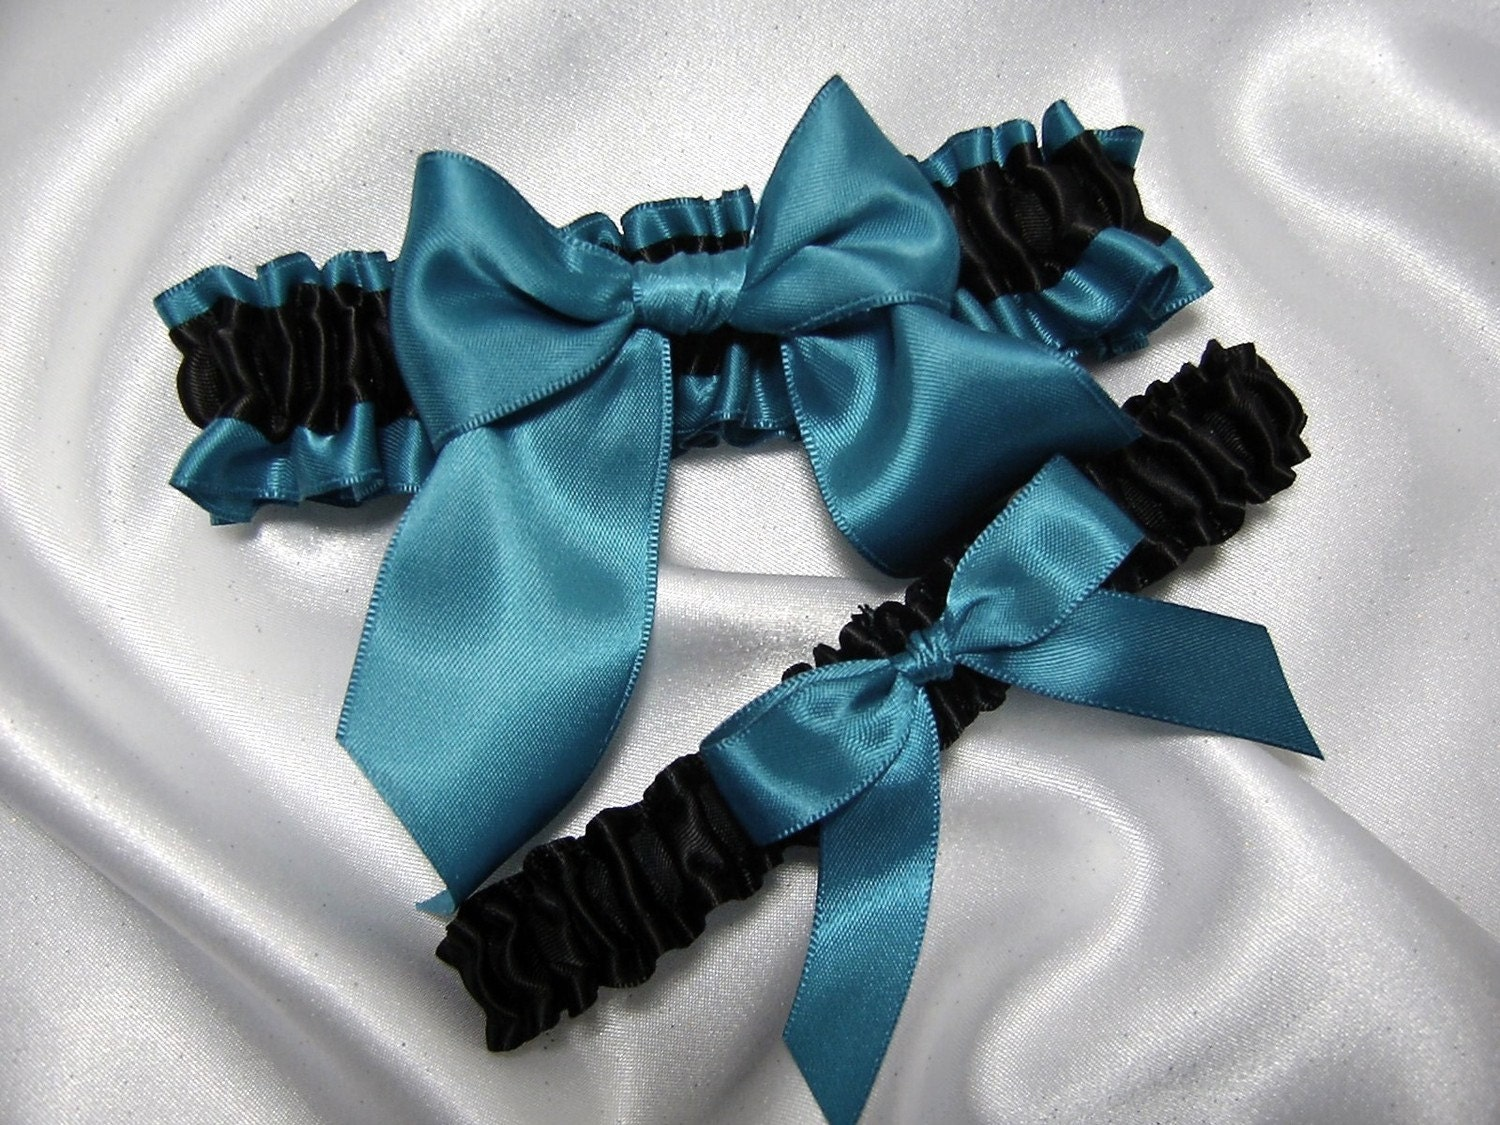 Black and Dark Teal Satin Wedding Garter Set Toss Garter Included